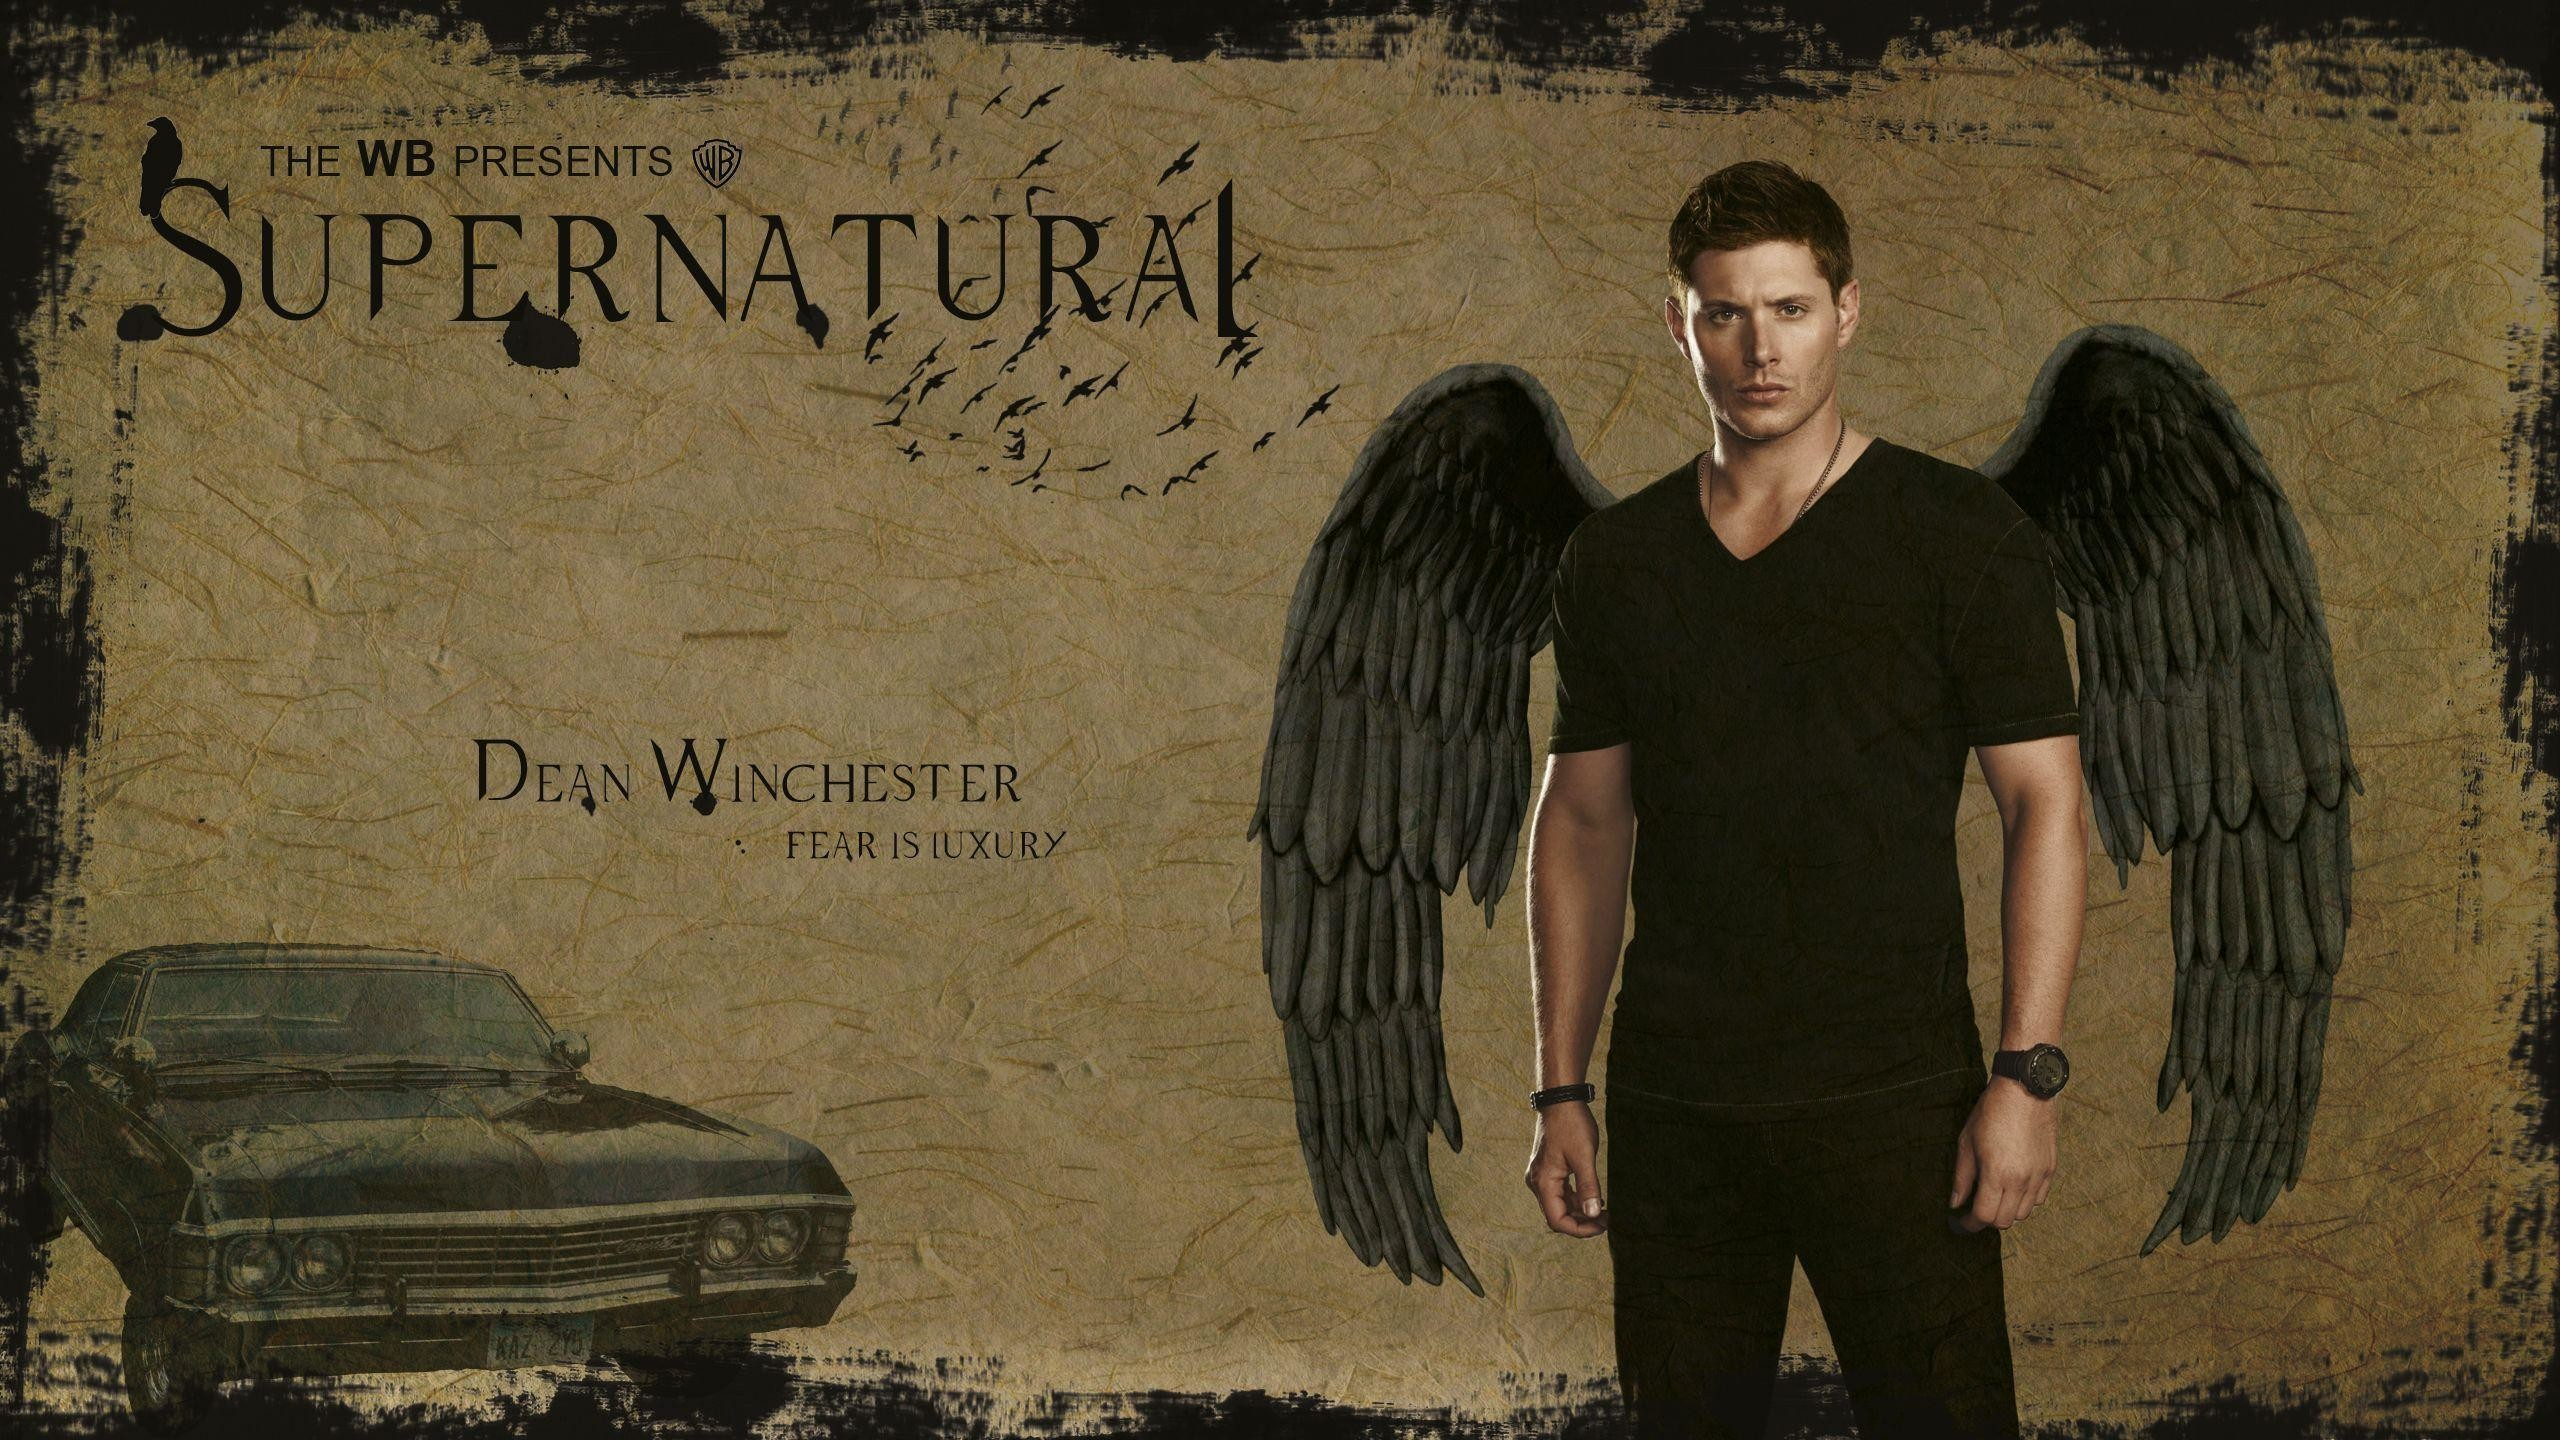 Supernatural – Dean and Sam face to face by BeAware8 on DeviantArt